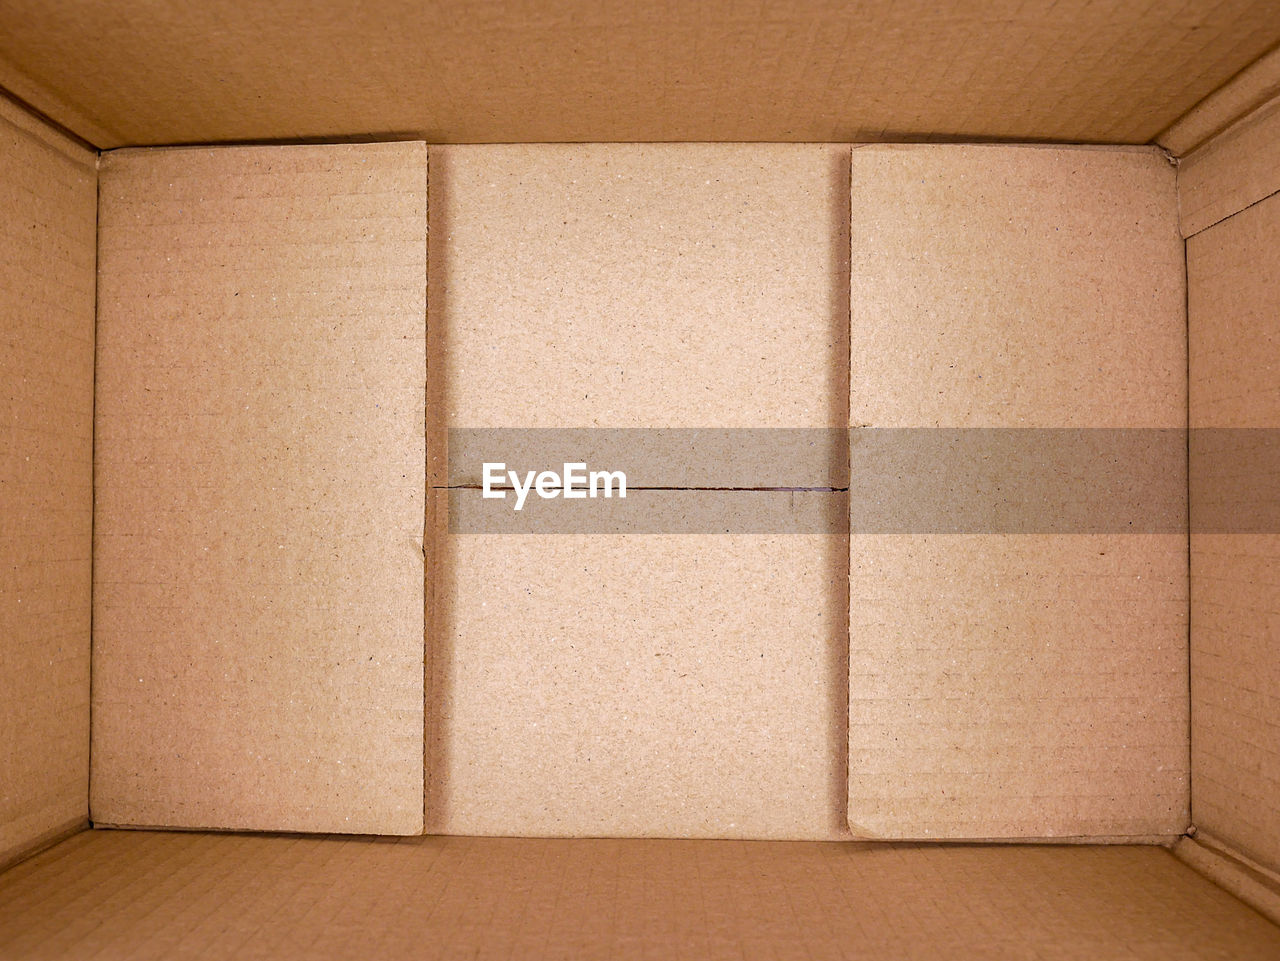 cardboard, box, cardboard box, brown, container, indoors, box - container, no people, paper, carton, backgrounds, architecture, domestic room, warehouse, close-up, full frame, man made object, pattern, man made, textured, package, blank